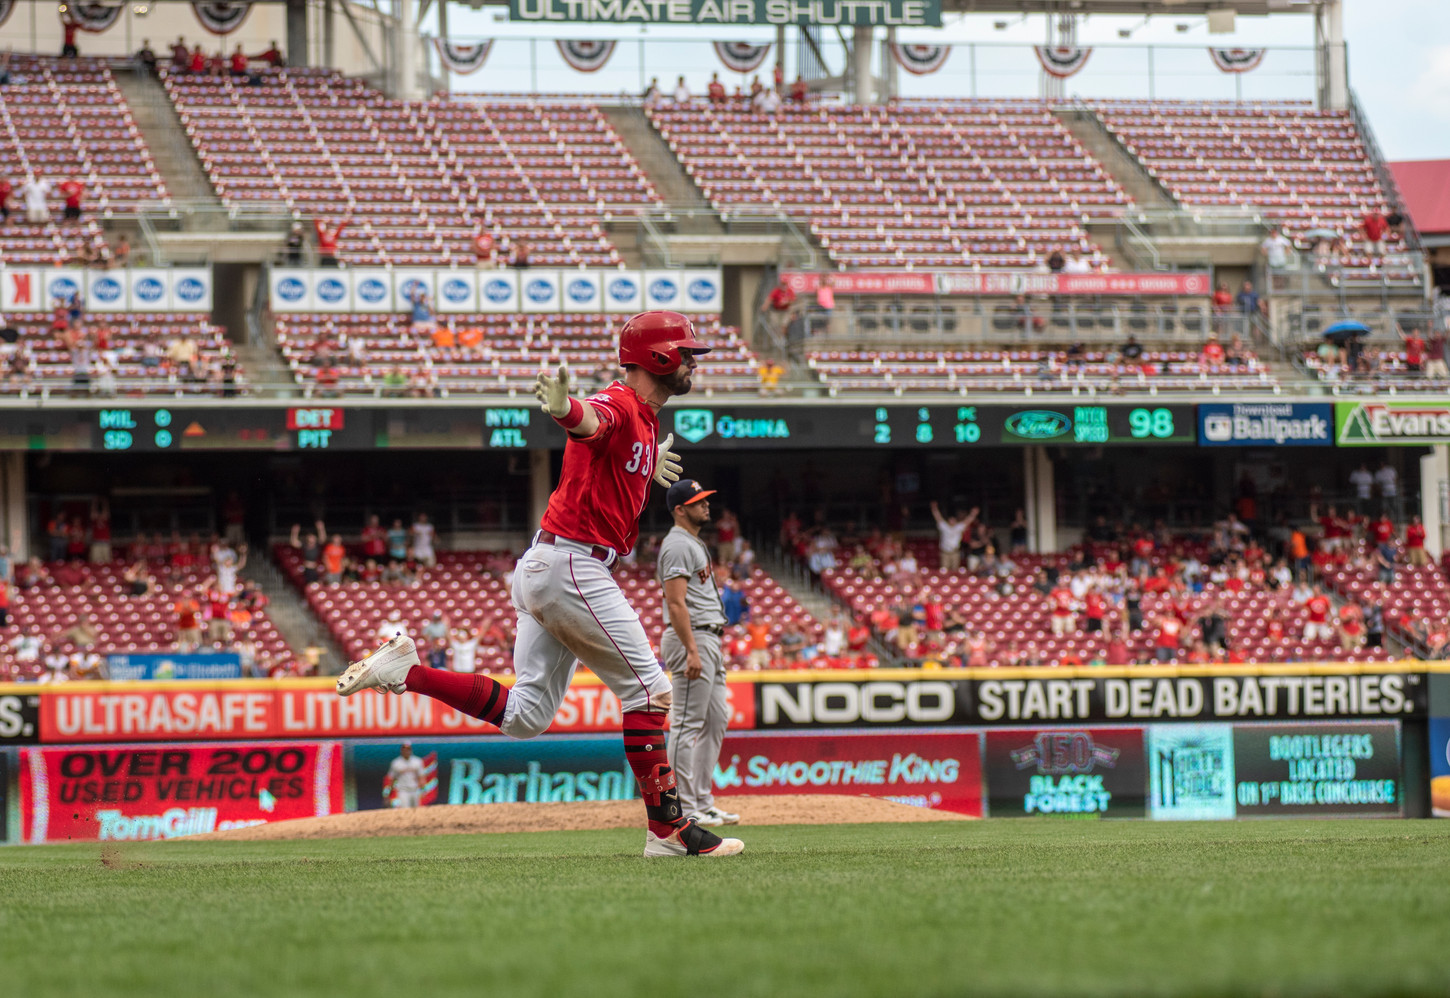 Jesse Winker runs the bases after hitting a homerun to win the game.